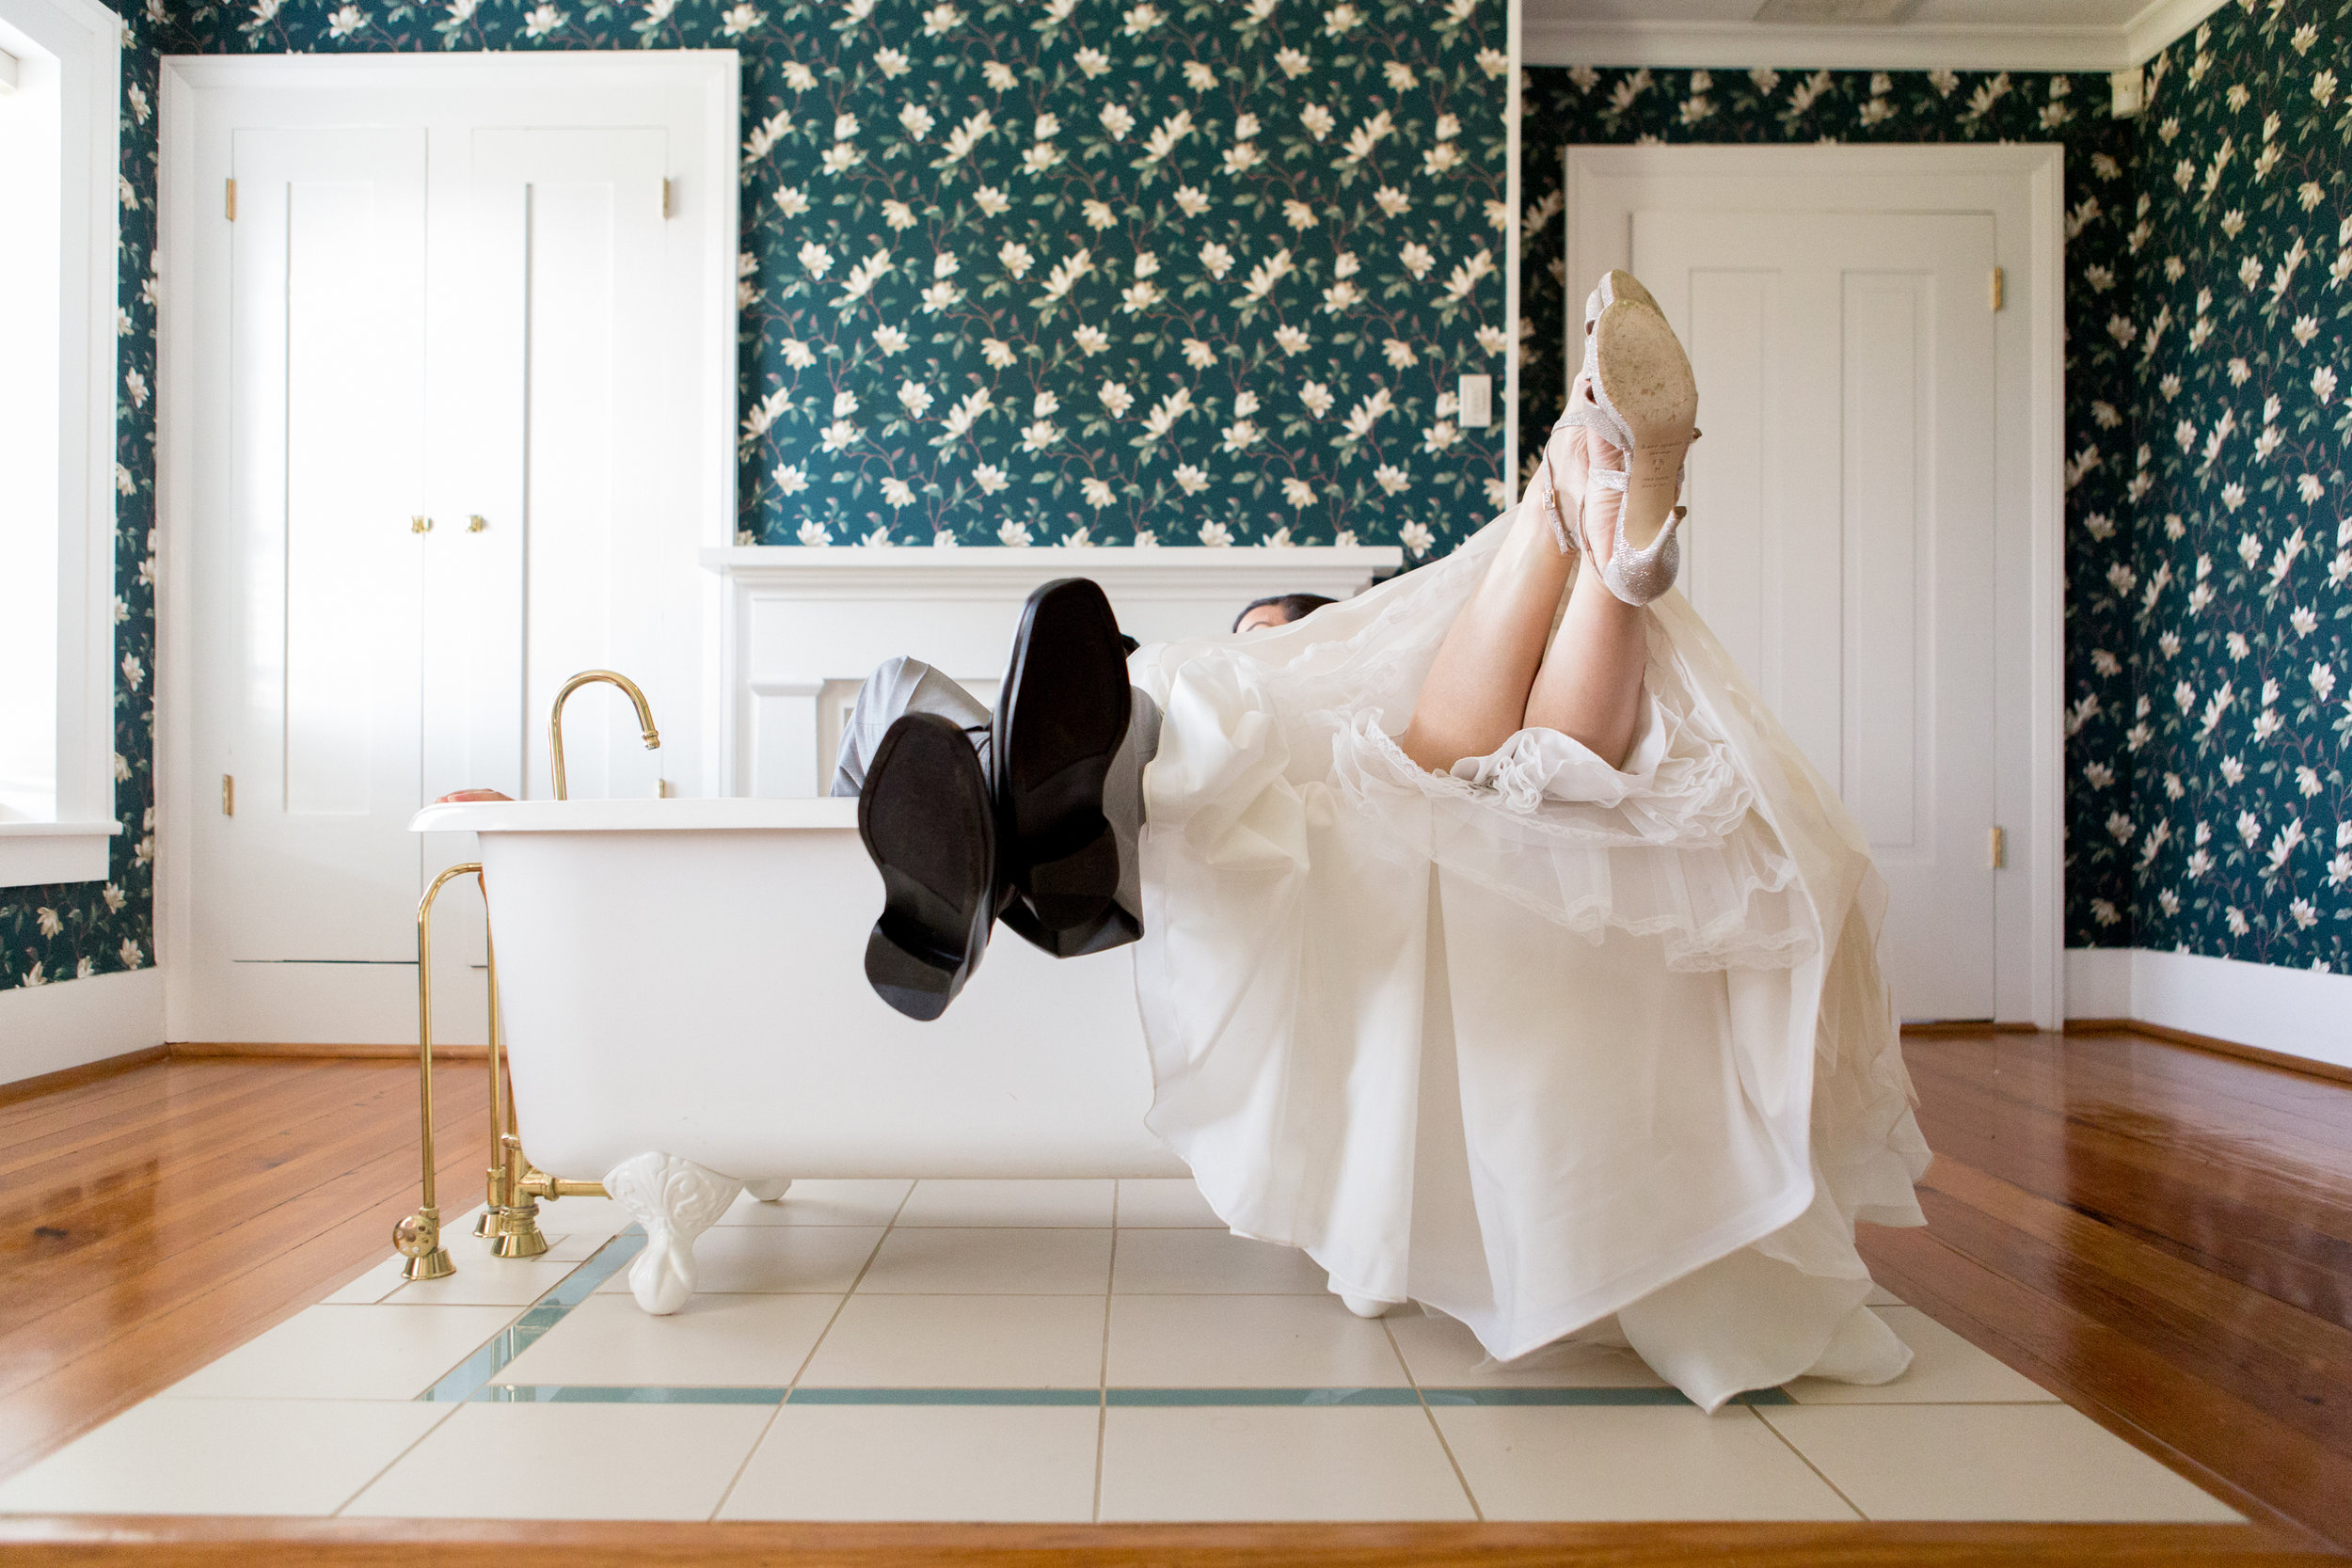 How To Start Planning A Wedding.How To Start Planning Your Wedding The Plannery